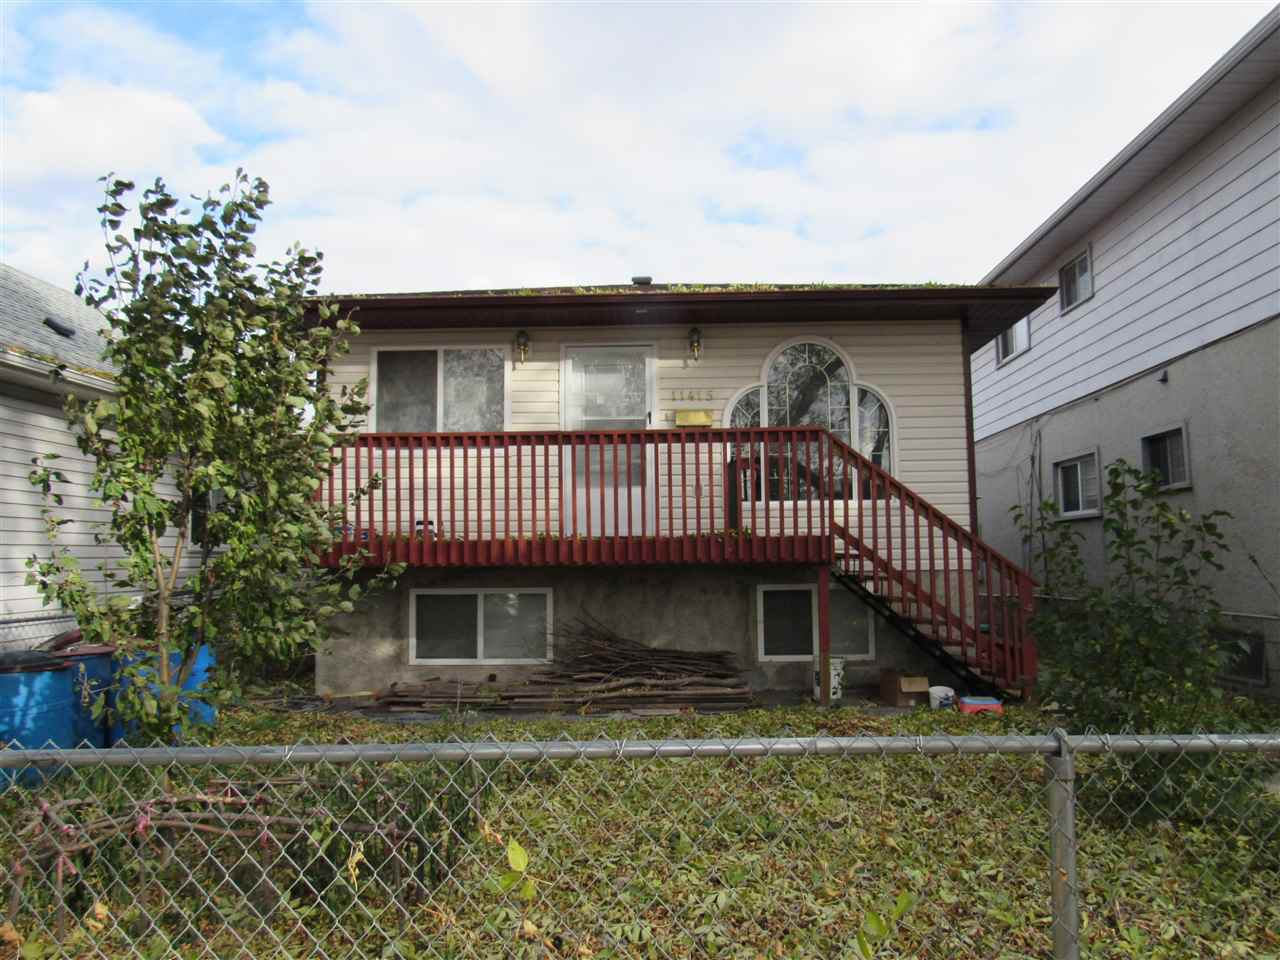 Main Photo: 11415 92 Street in Edmonton: Zone 05 House for sale : MLS®# E4176800